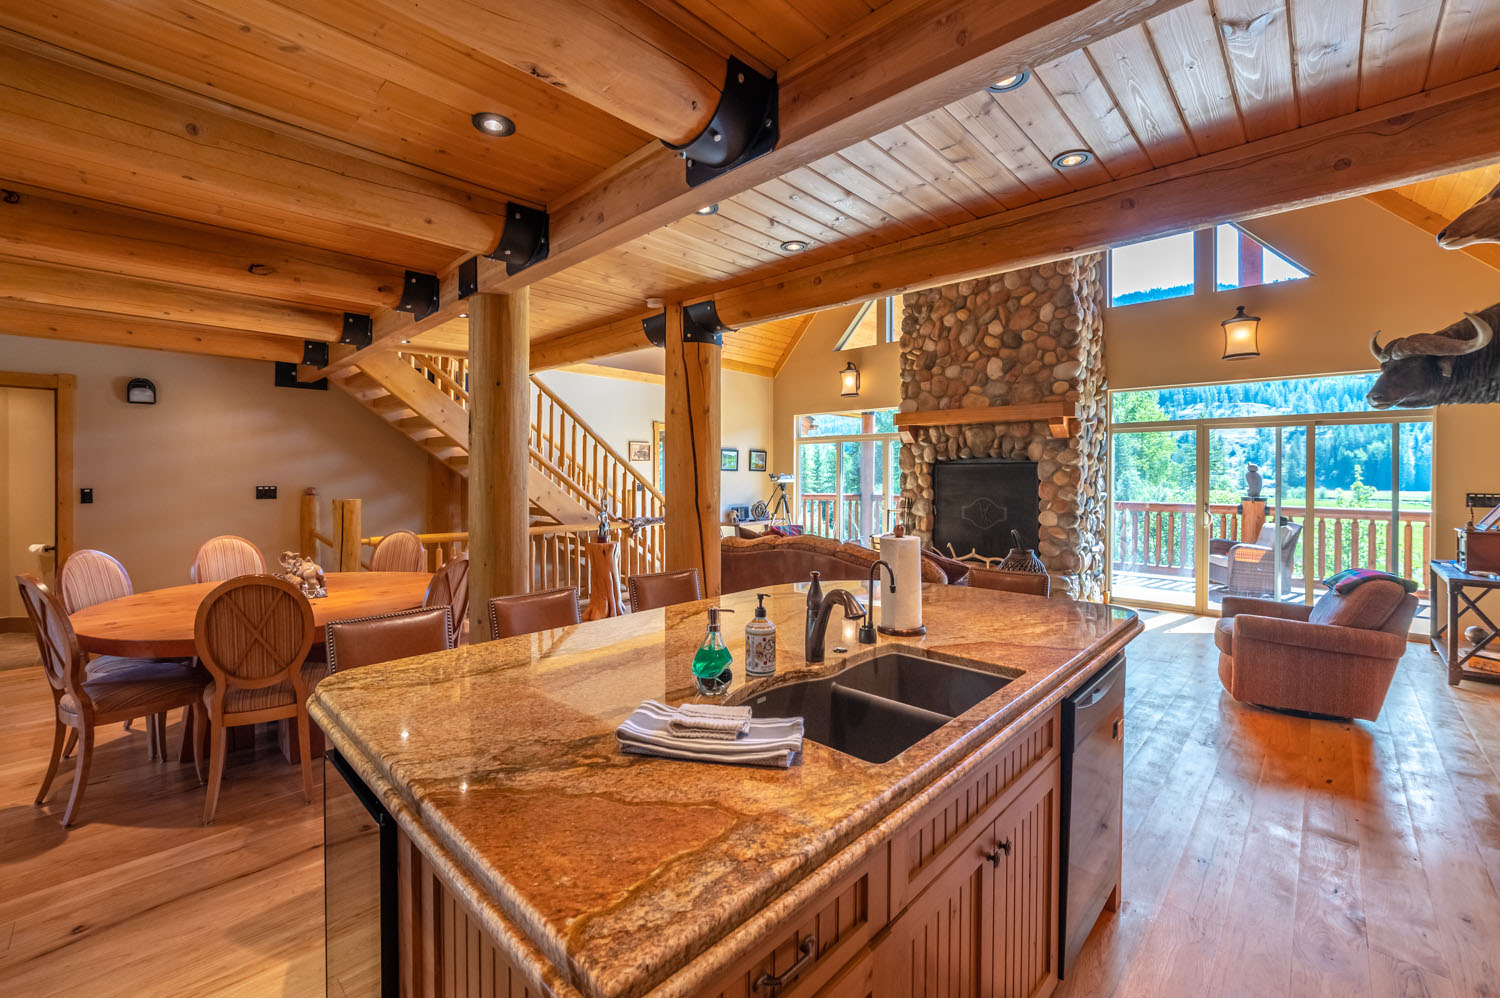 Willow springs ranch 24